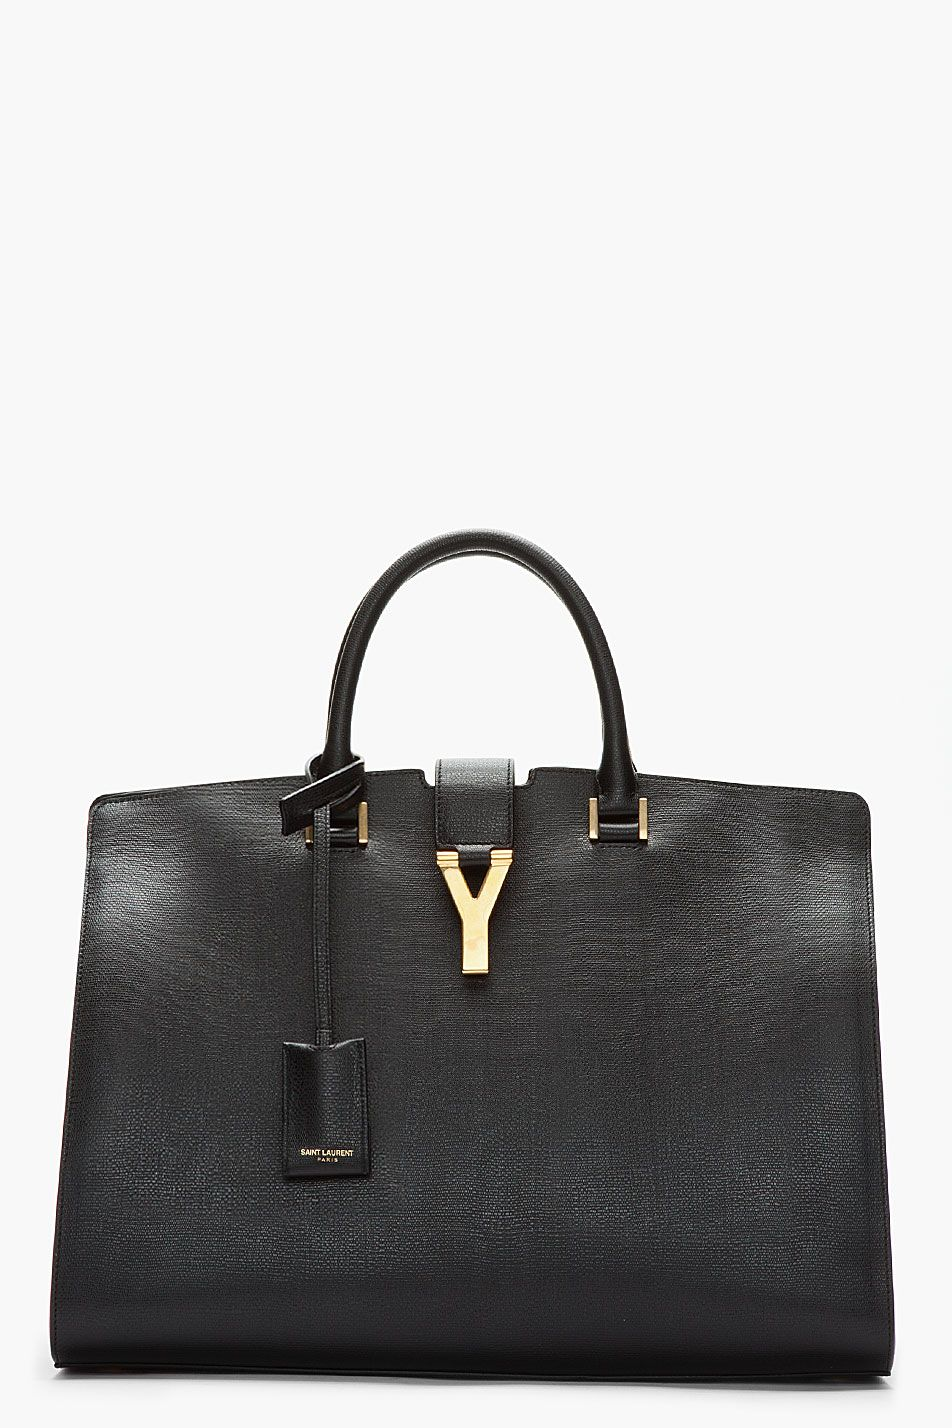 FOR HER: Saint Laurent Black Leather Chyc Tote